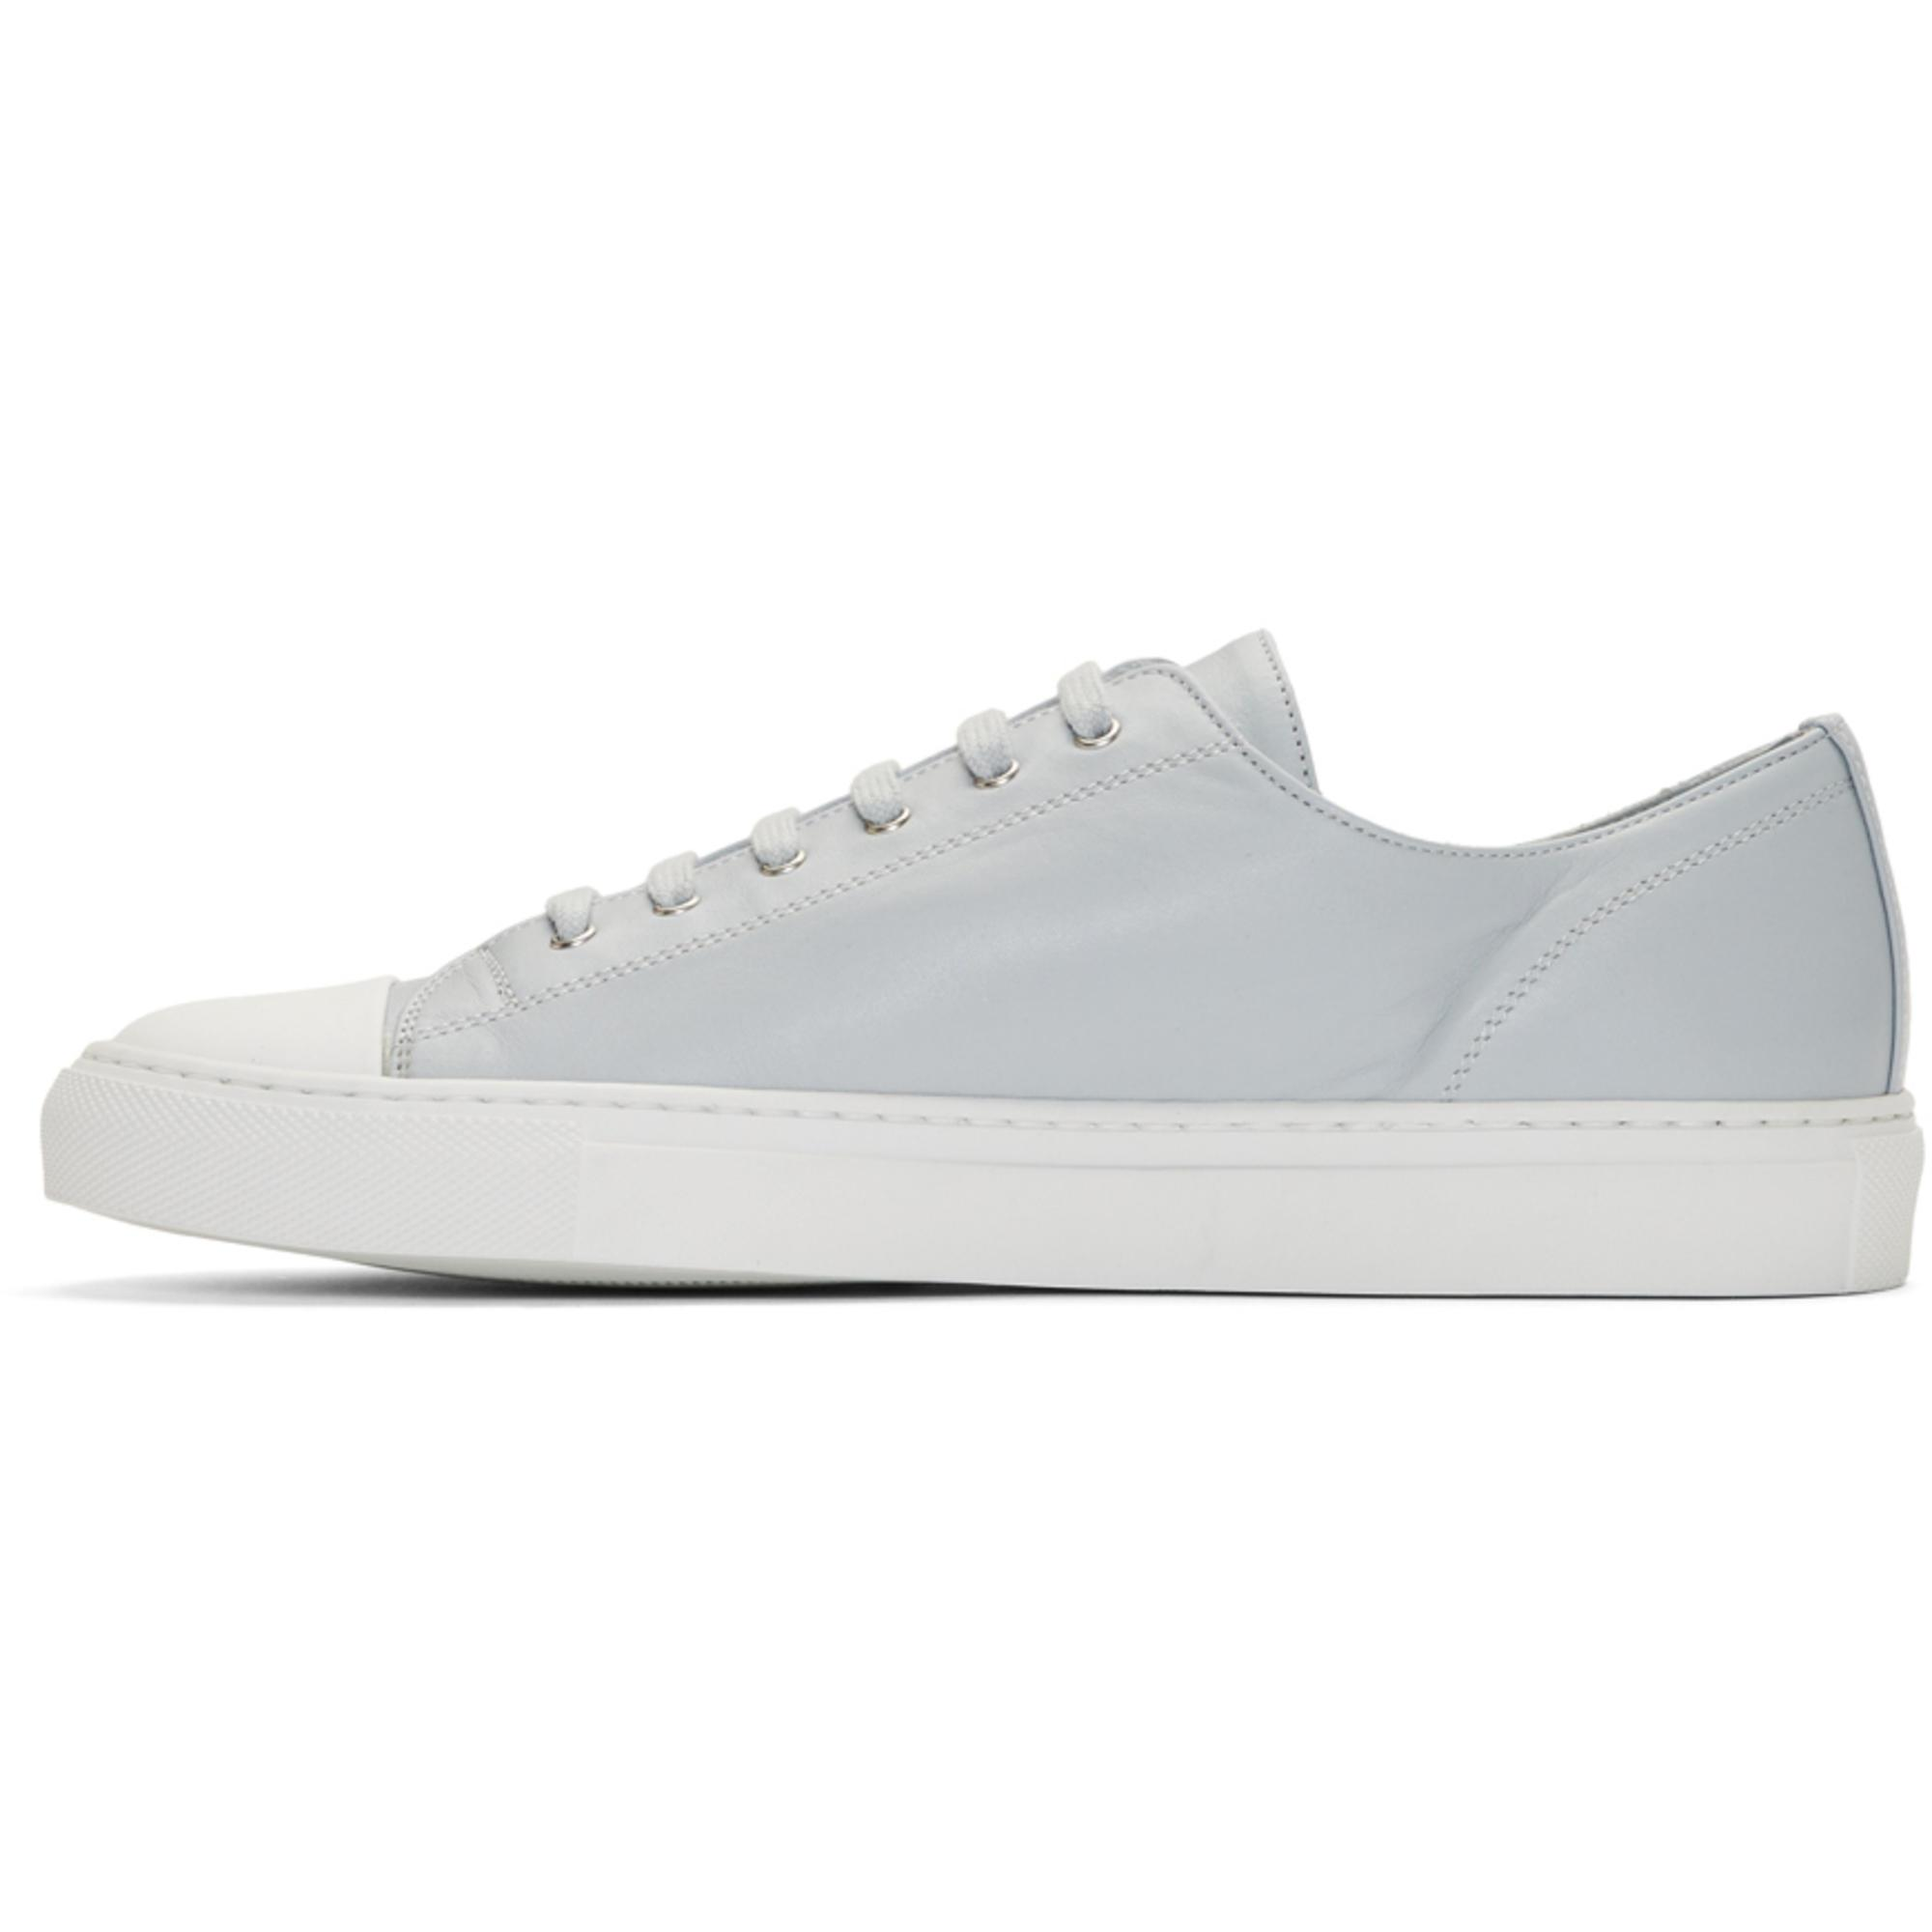 Common Projects Leather Grey Tournament Low Cap Toe Sneakers in Grey